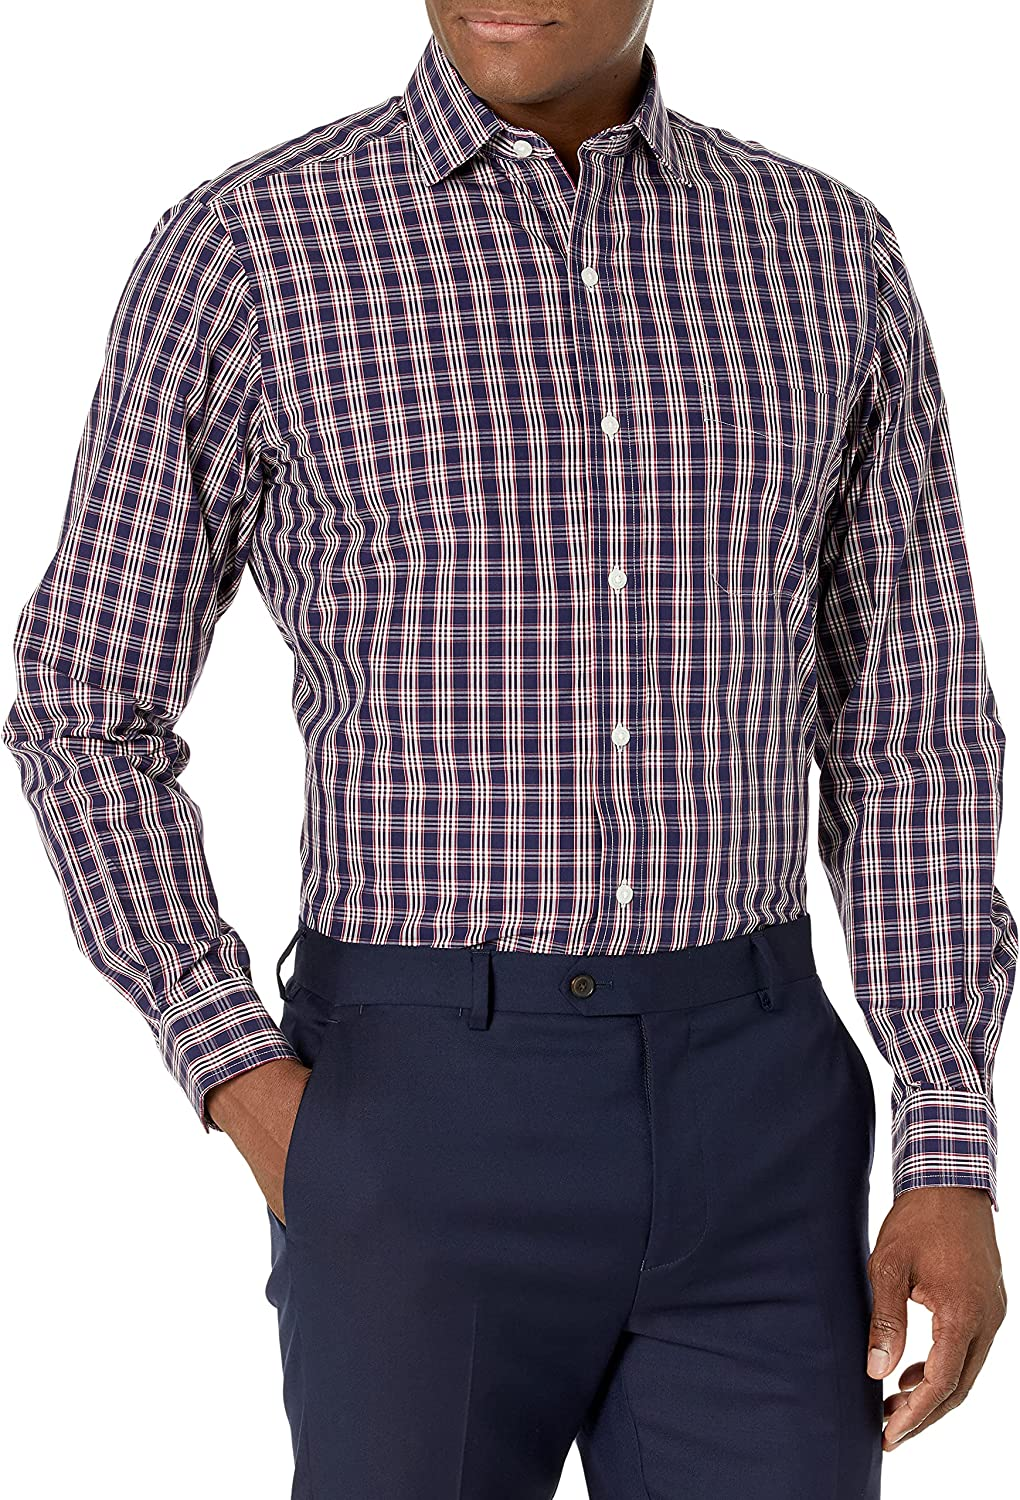 New Mens Check Long Sleeve Shirts Formal Casual Wear!!BUY ONE GET ONE FREE!!